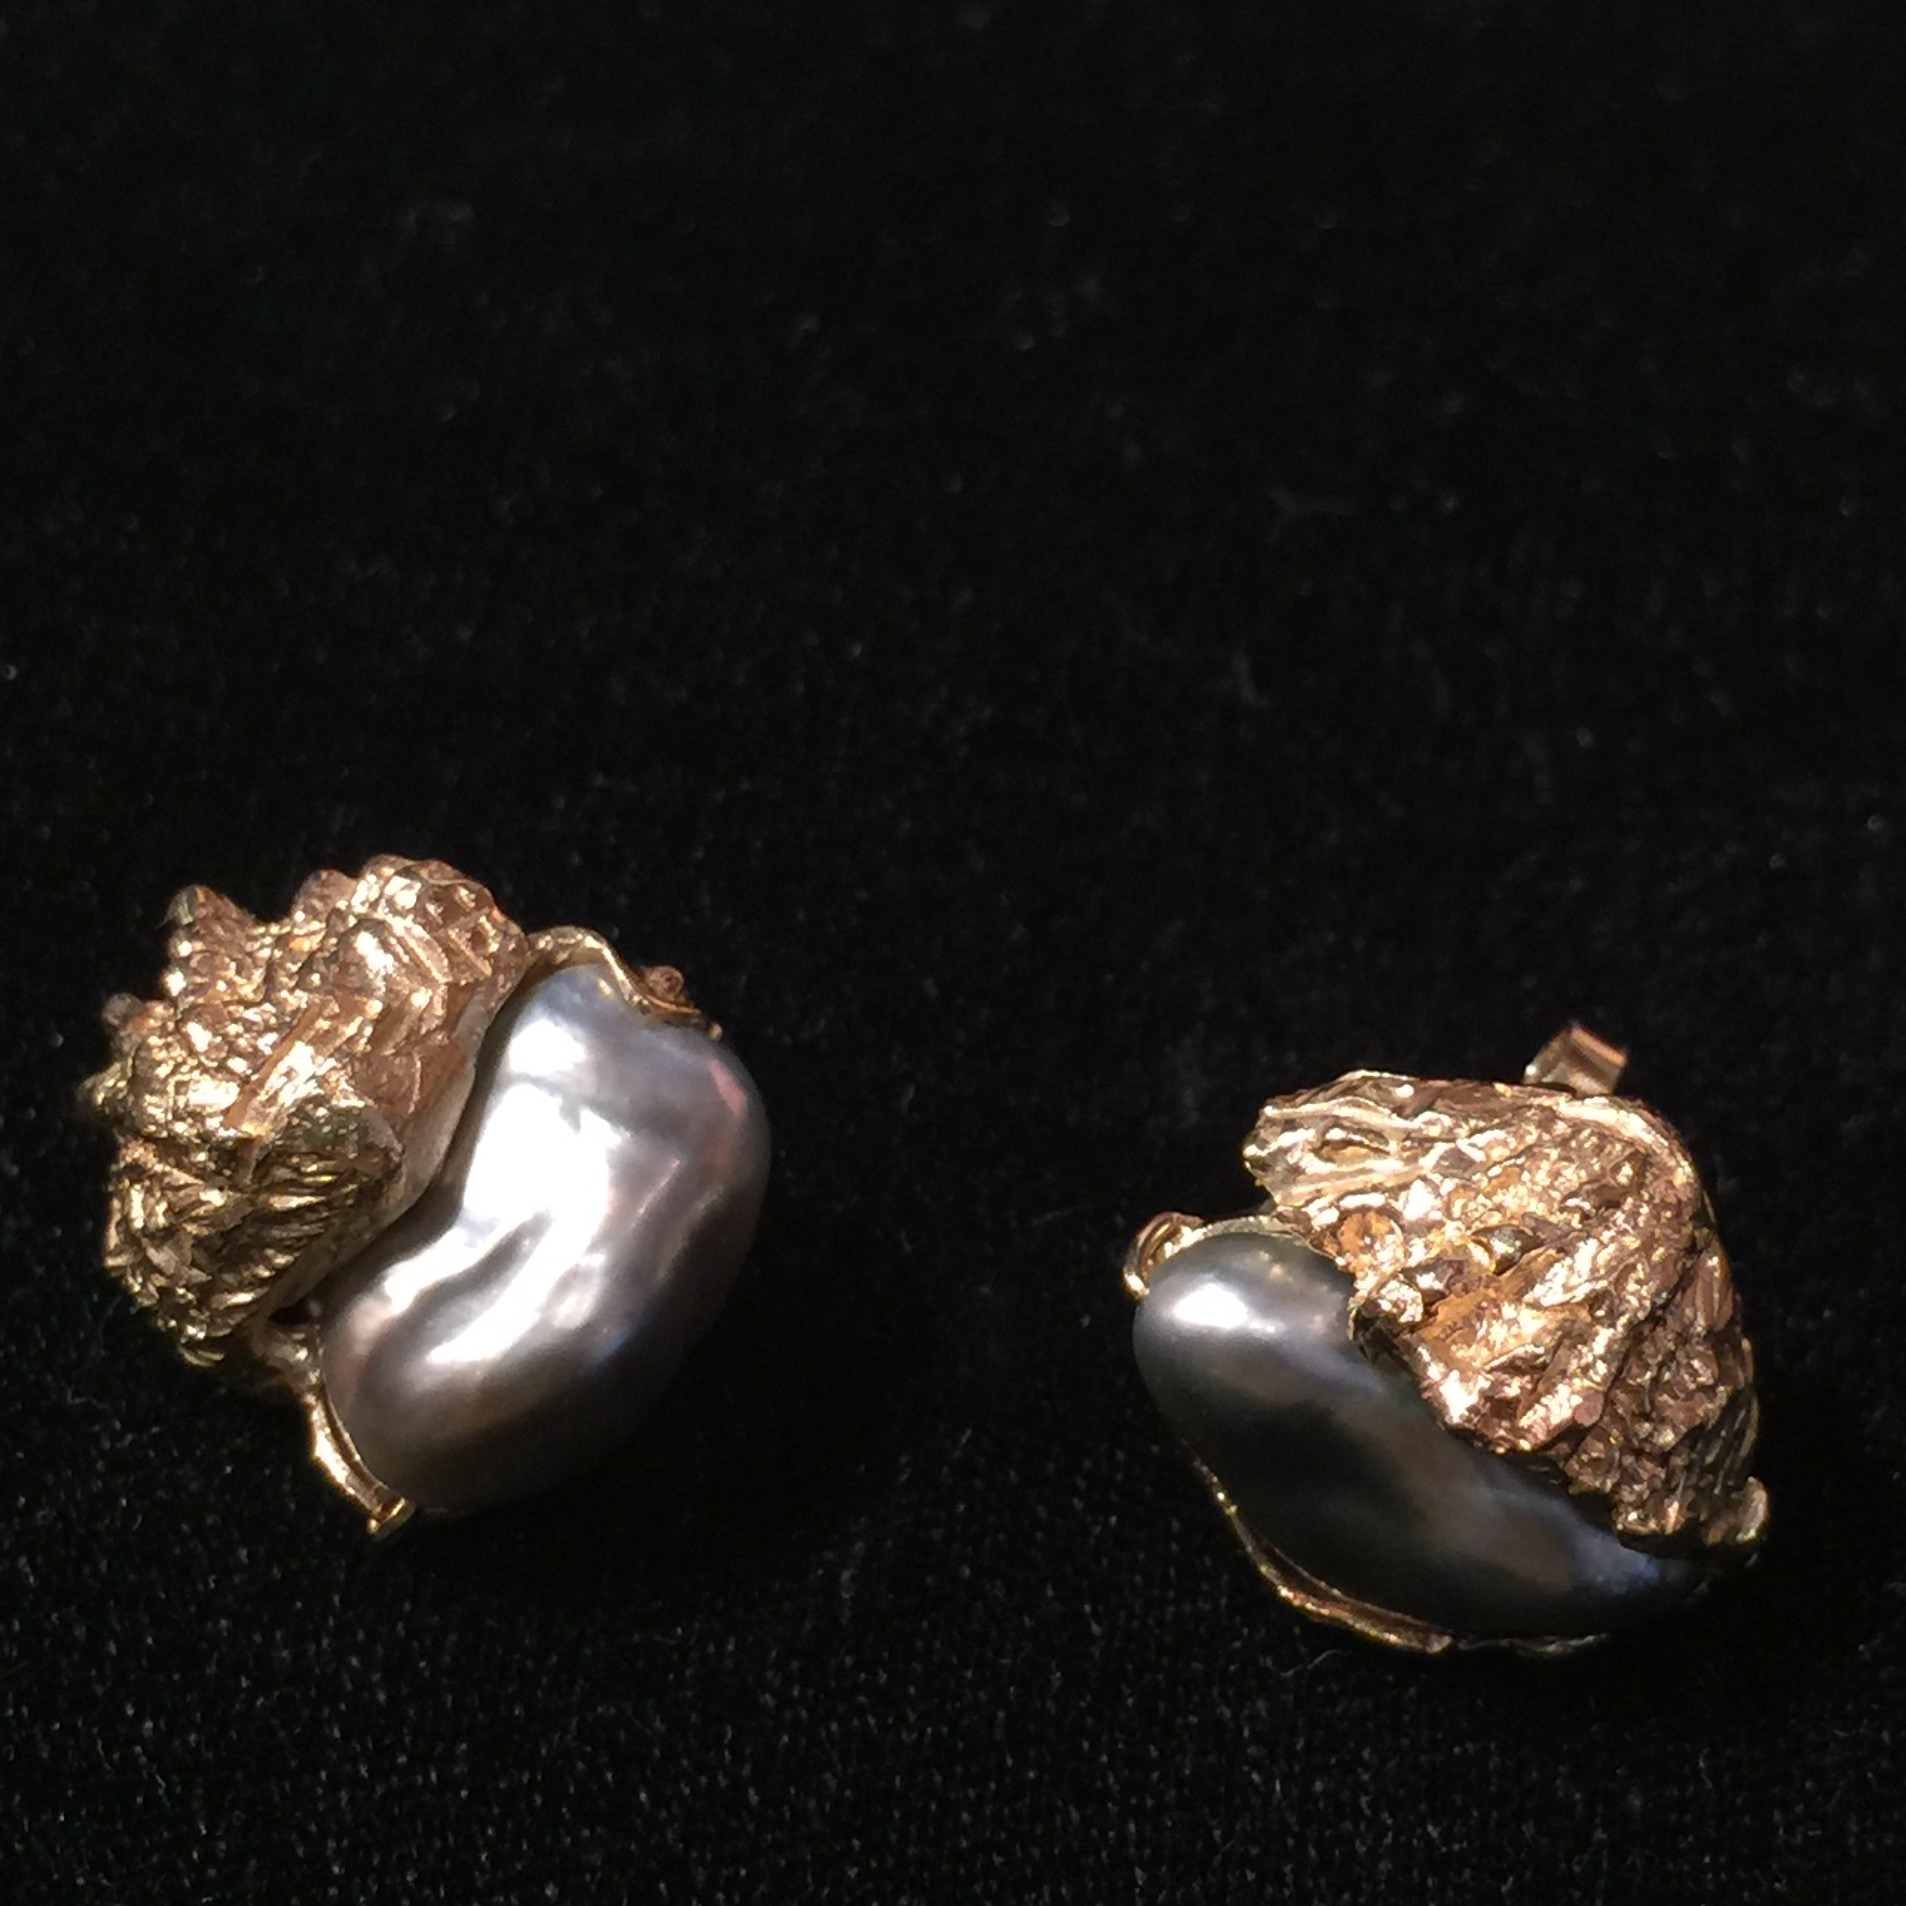 Eve's Black pearl and gold earrings - I fell in love with these.